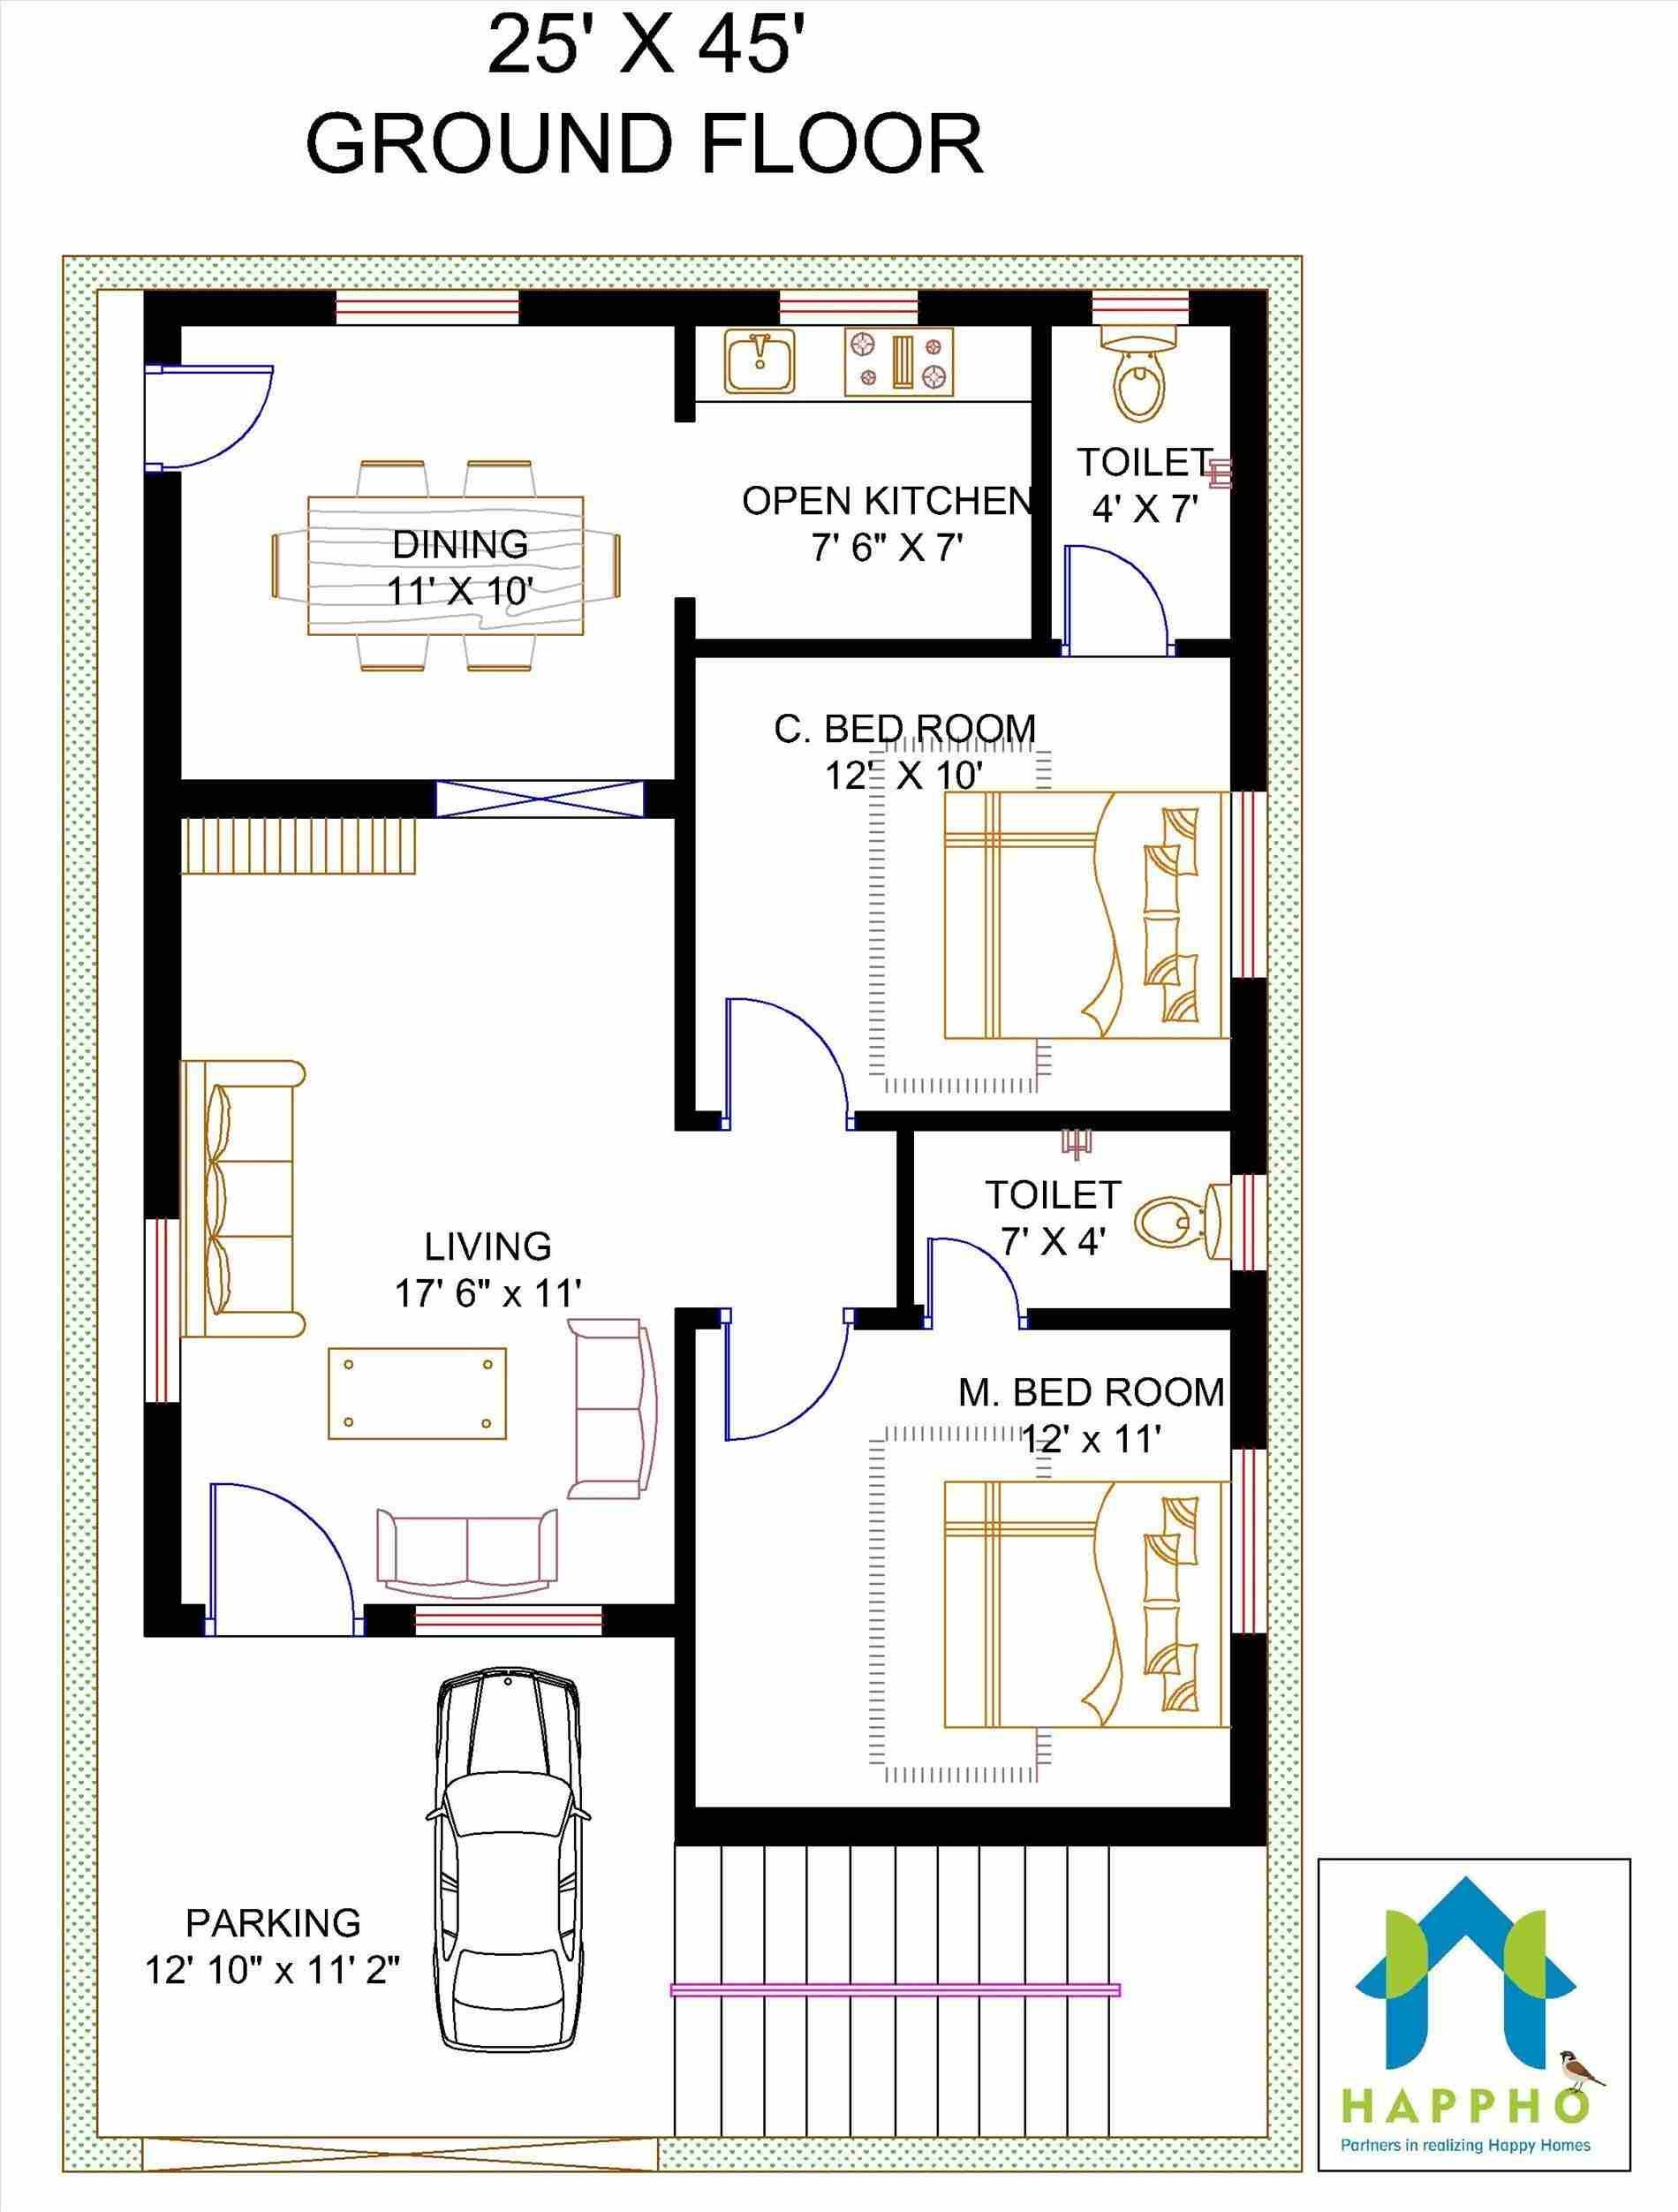 Http Mna Events Com 2 Bedroom House Plans Indian Style Html